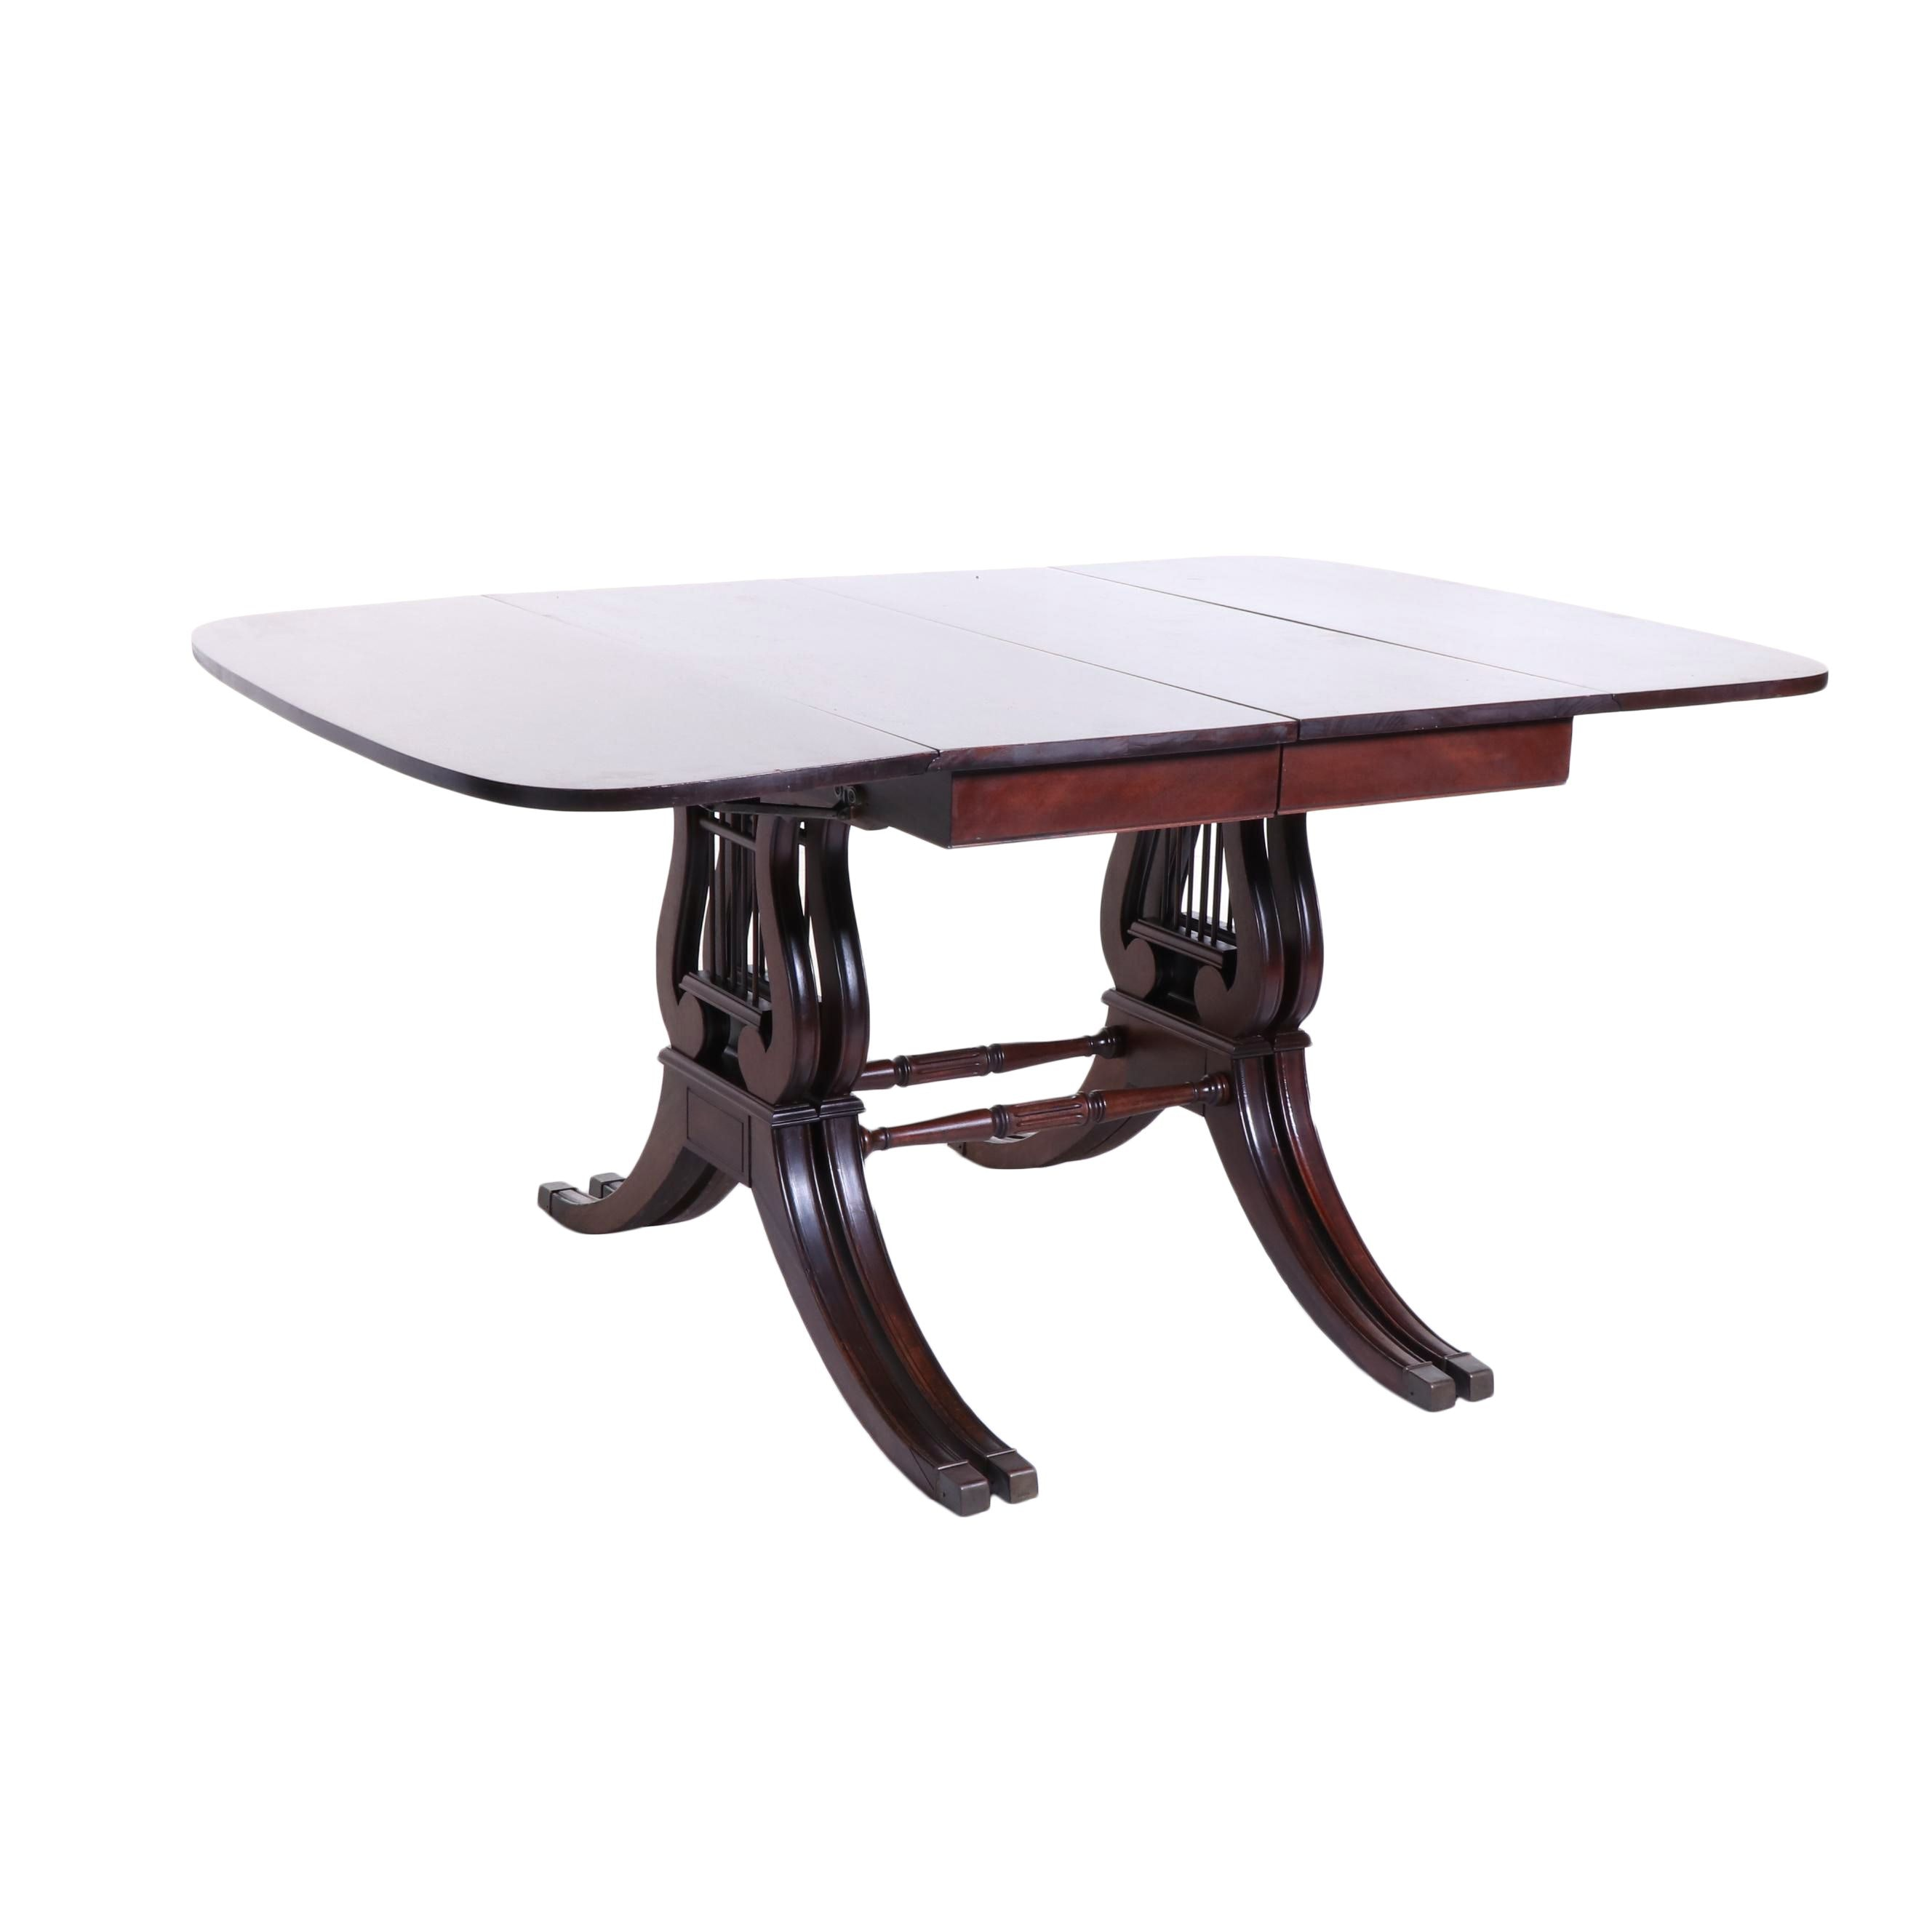 Duncan Phyfe Style Mahogany Dining Table, Early to Mid 20th Century